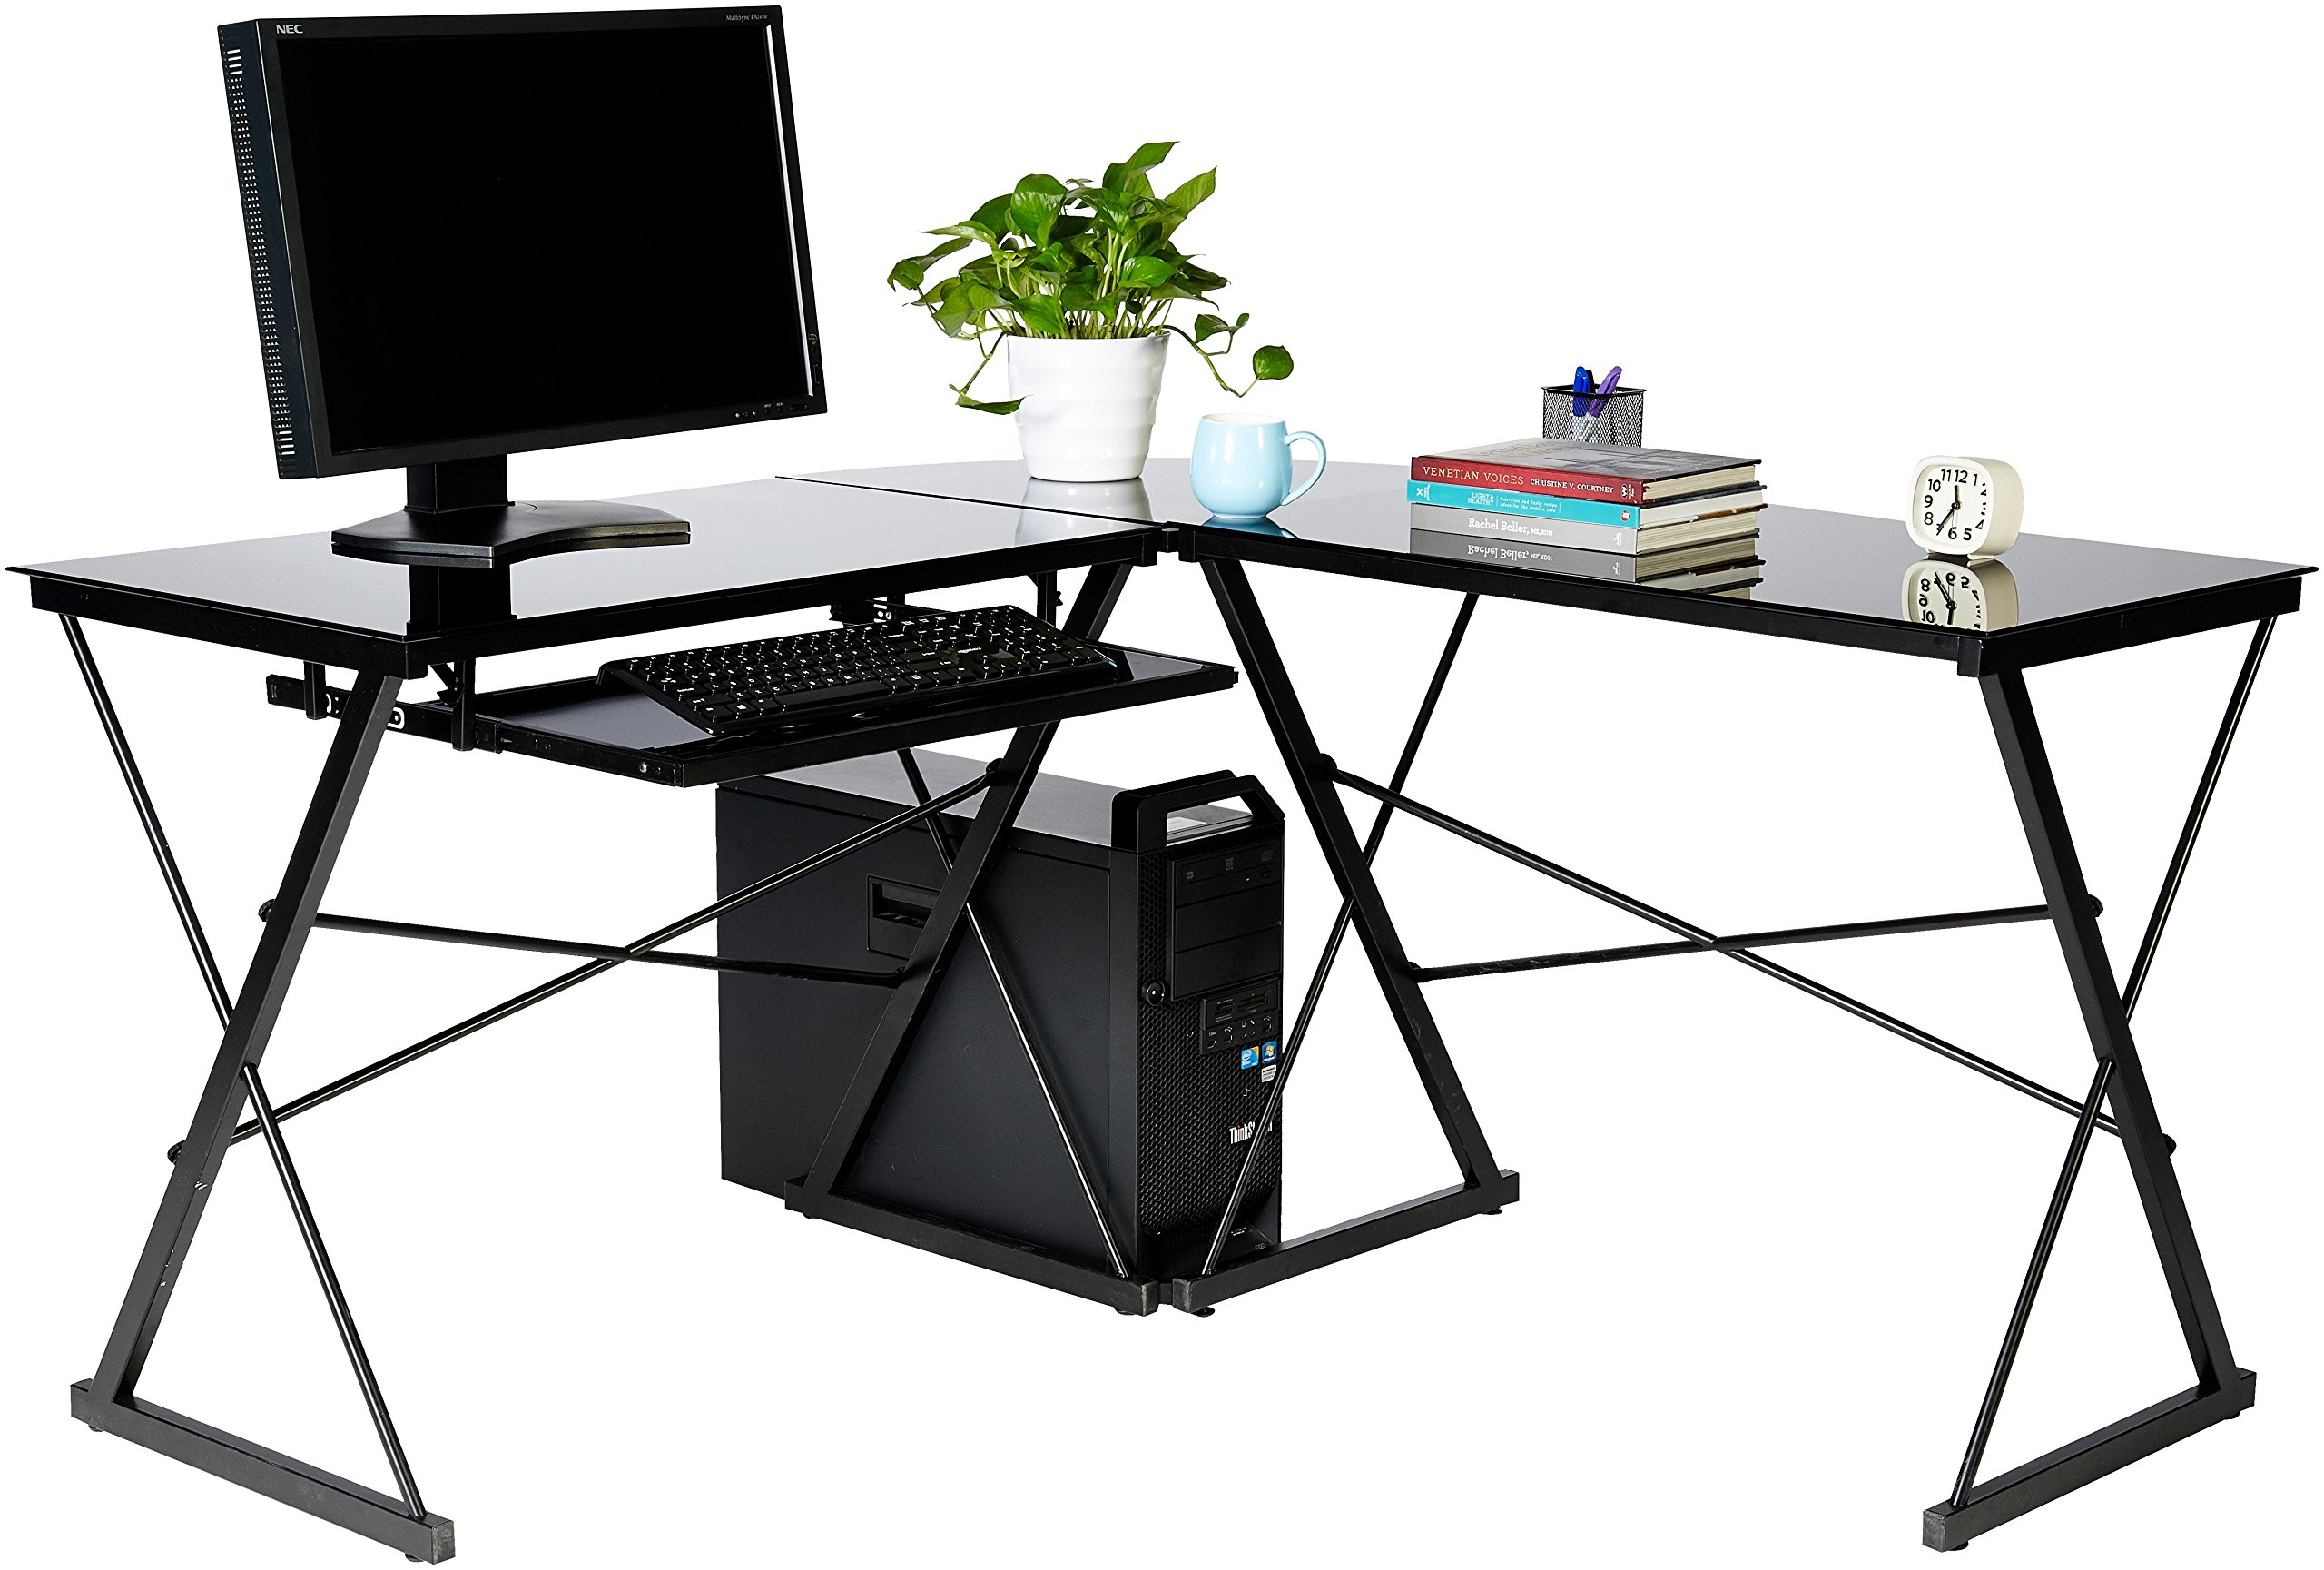 AmazonBasics Three Piece Corner Gaming Computer Desk - Black with Black Glass - 3-piece modular desk with contemporary, minimalist style; can be separated into 2 desks Smooth work surface made of black tempered safety glass (polished and beveled) Includes independent CPU stand and sliding keyboard tray that can be mounted on either side - writing-desks, living-room-furniture, living-room - 81I1dVJpB%2BL -